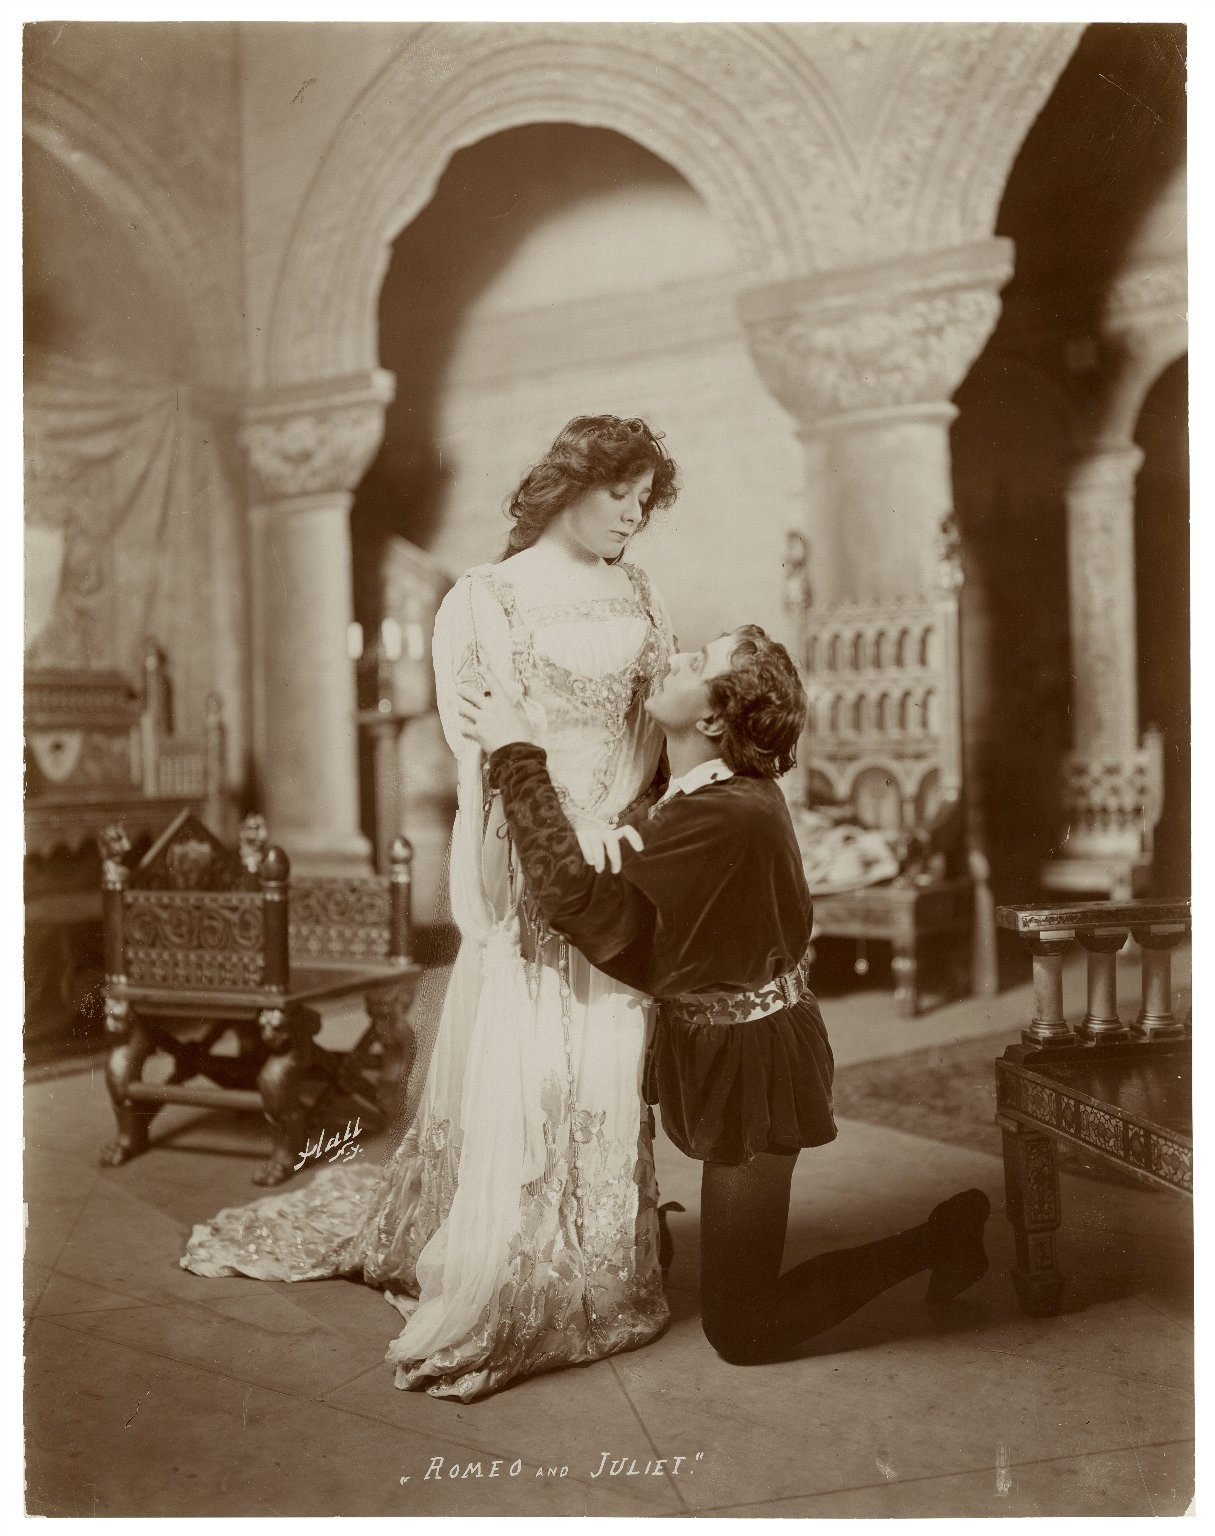 1904 promotional still of Julia Marlowe as Juliet and E.H. Sothern as Romeo